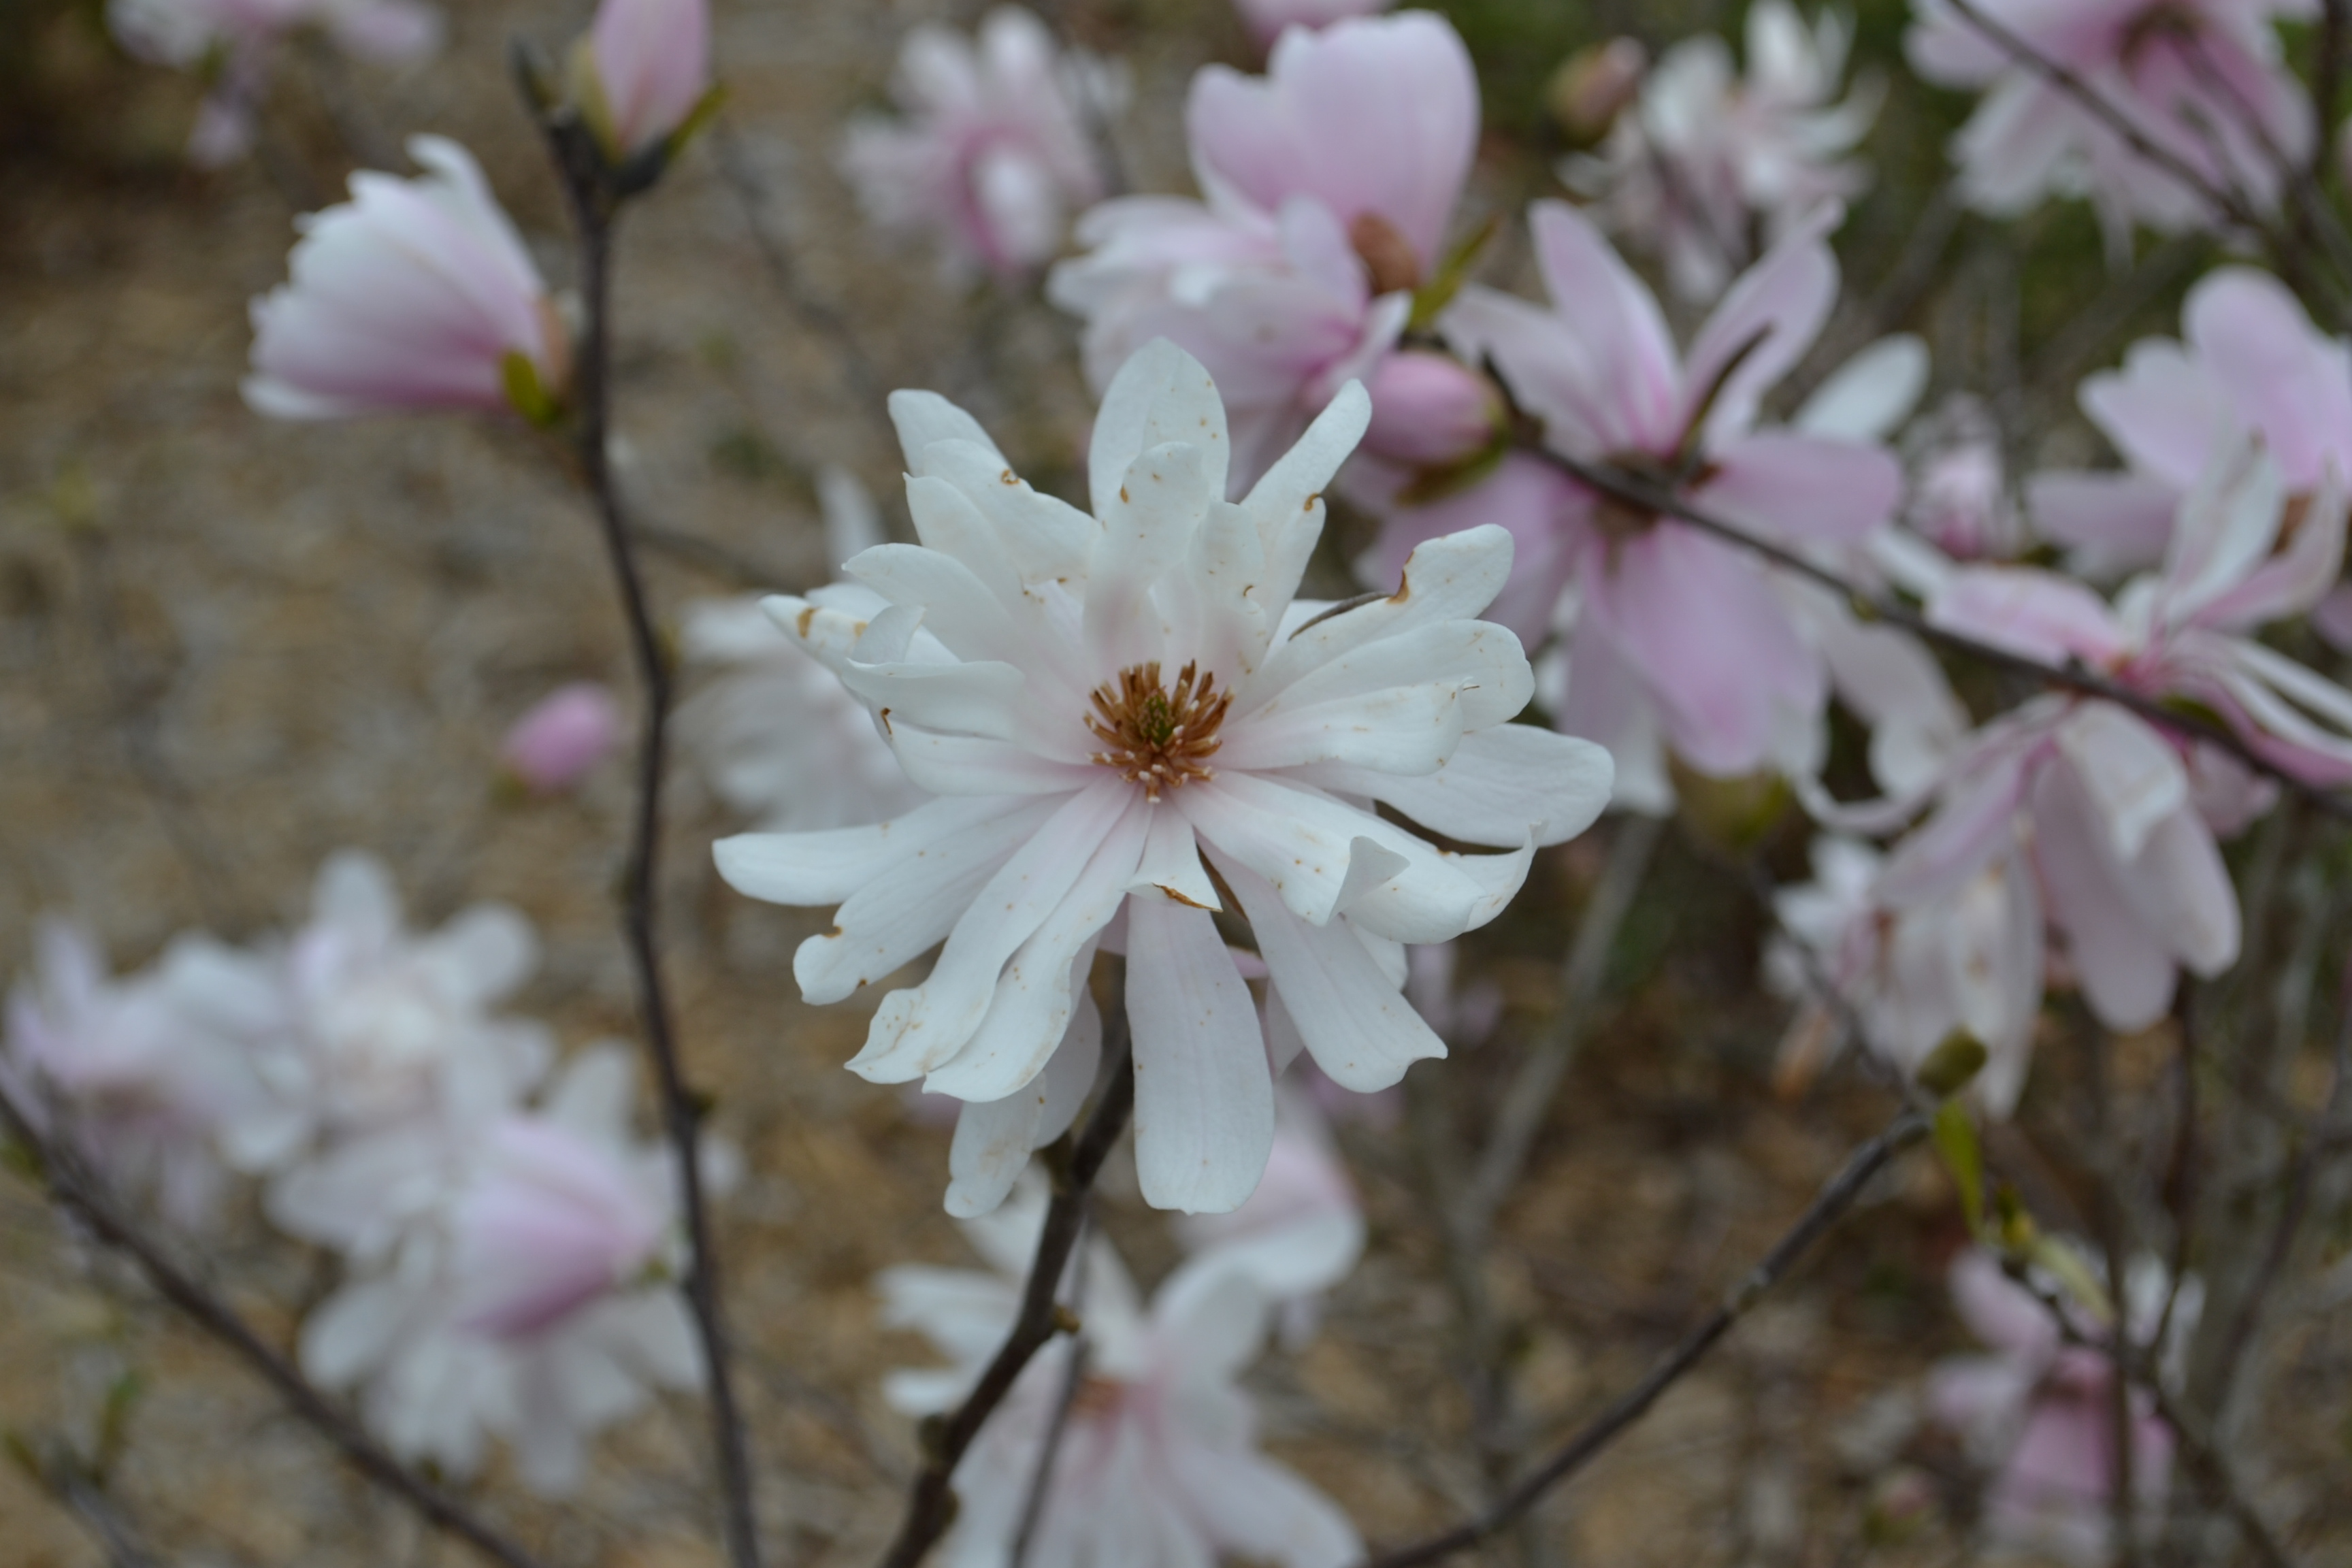 The 'Star' of Magnolias